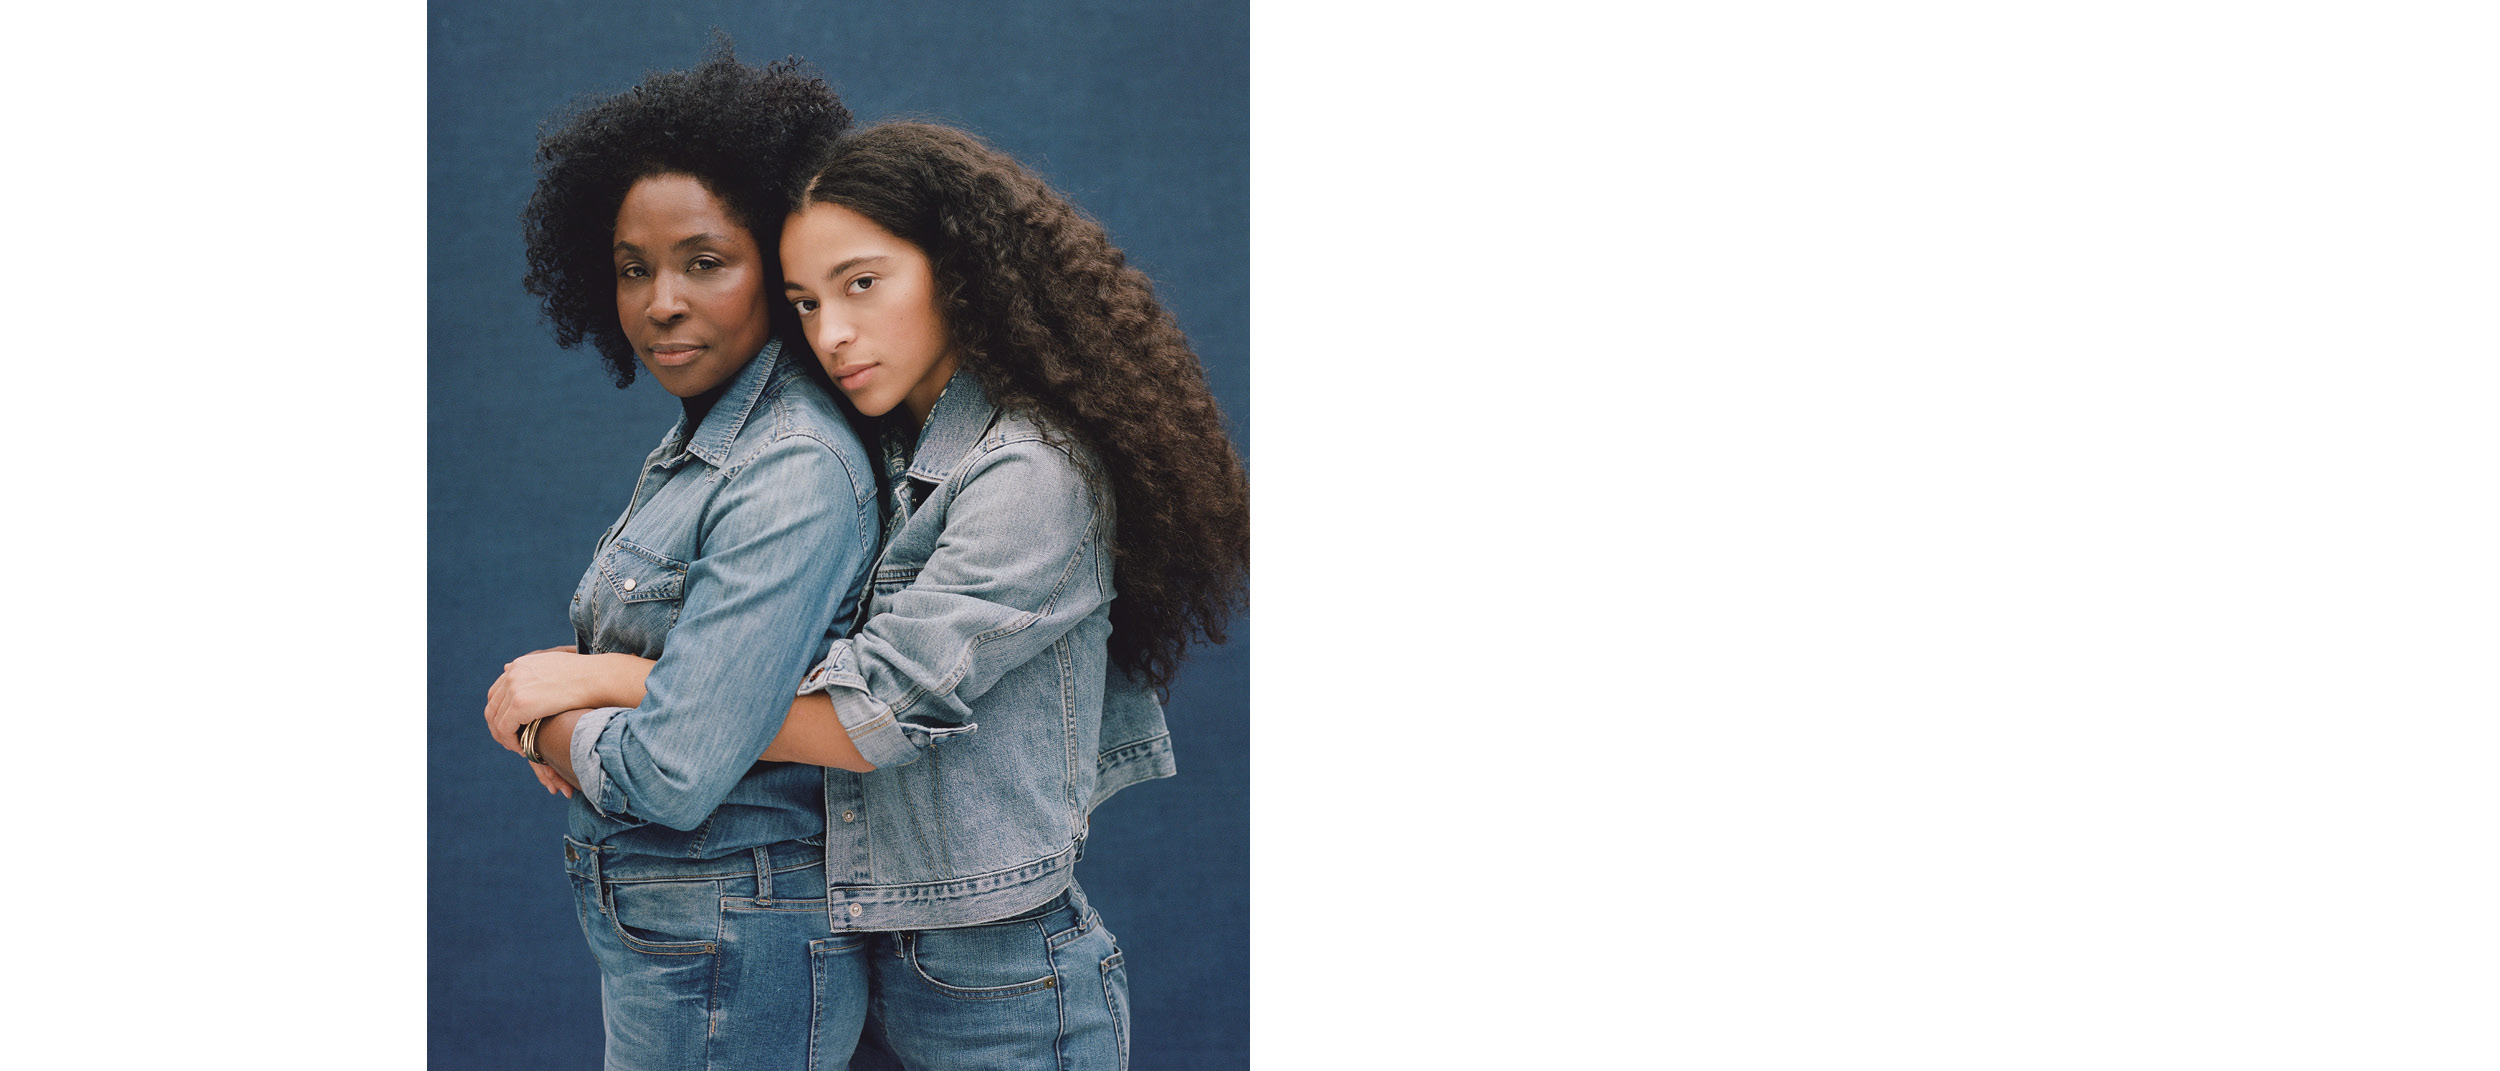 Art Direction: Sami Barker  Models: Zora Casebere and Lorna Simpson  Stylist: Eddie Oh  Hair Stylist: David Colvin  Makeup: Ren Nobuko